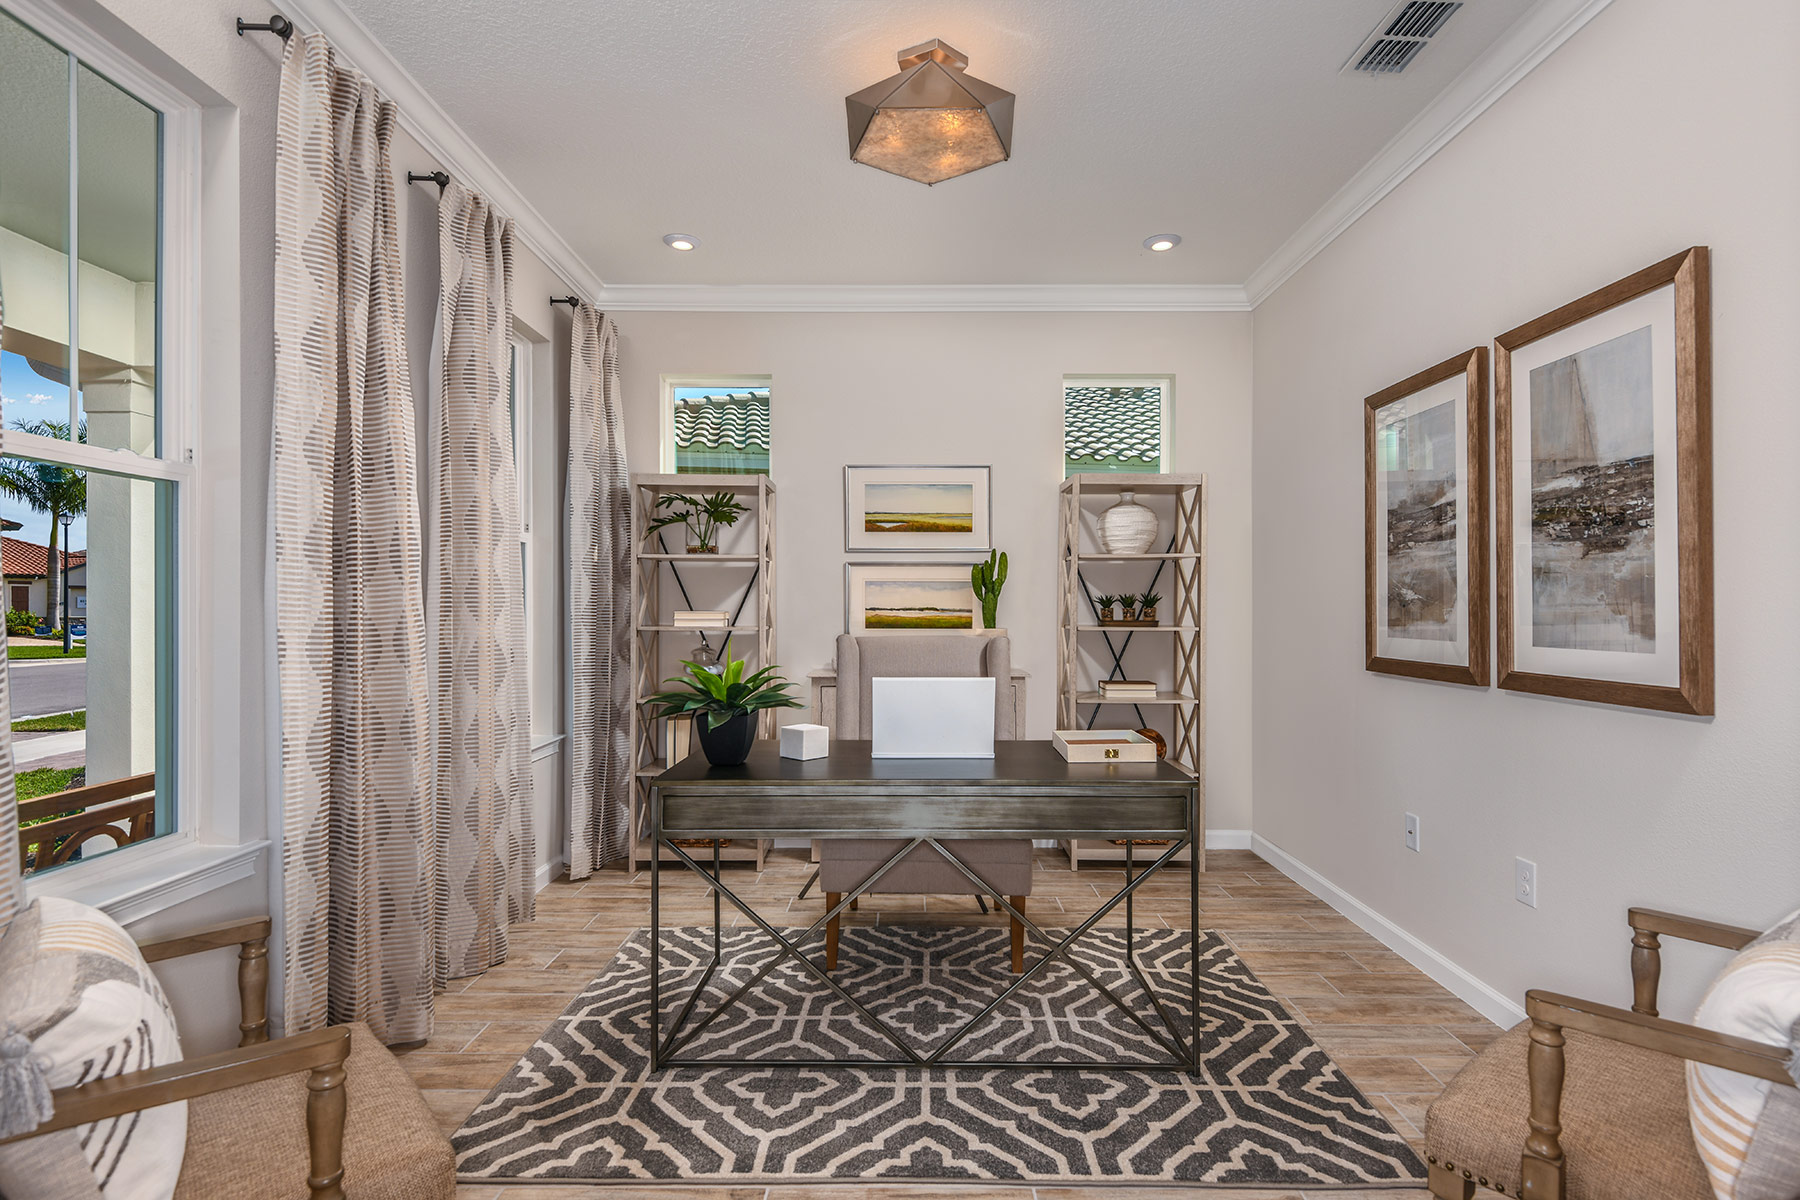 Riviera II Plan Study Room at Wellen Park - Renaissance in Venice Florida by Mattamy Homes